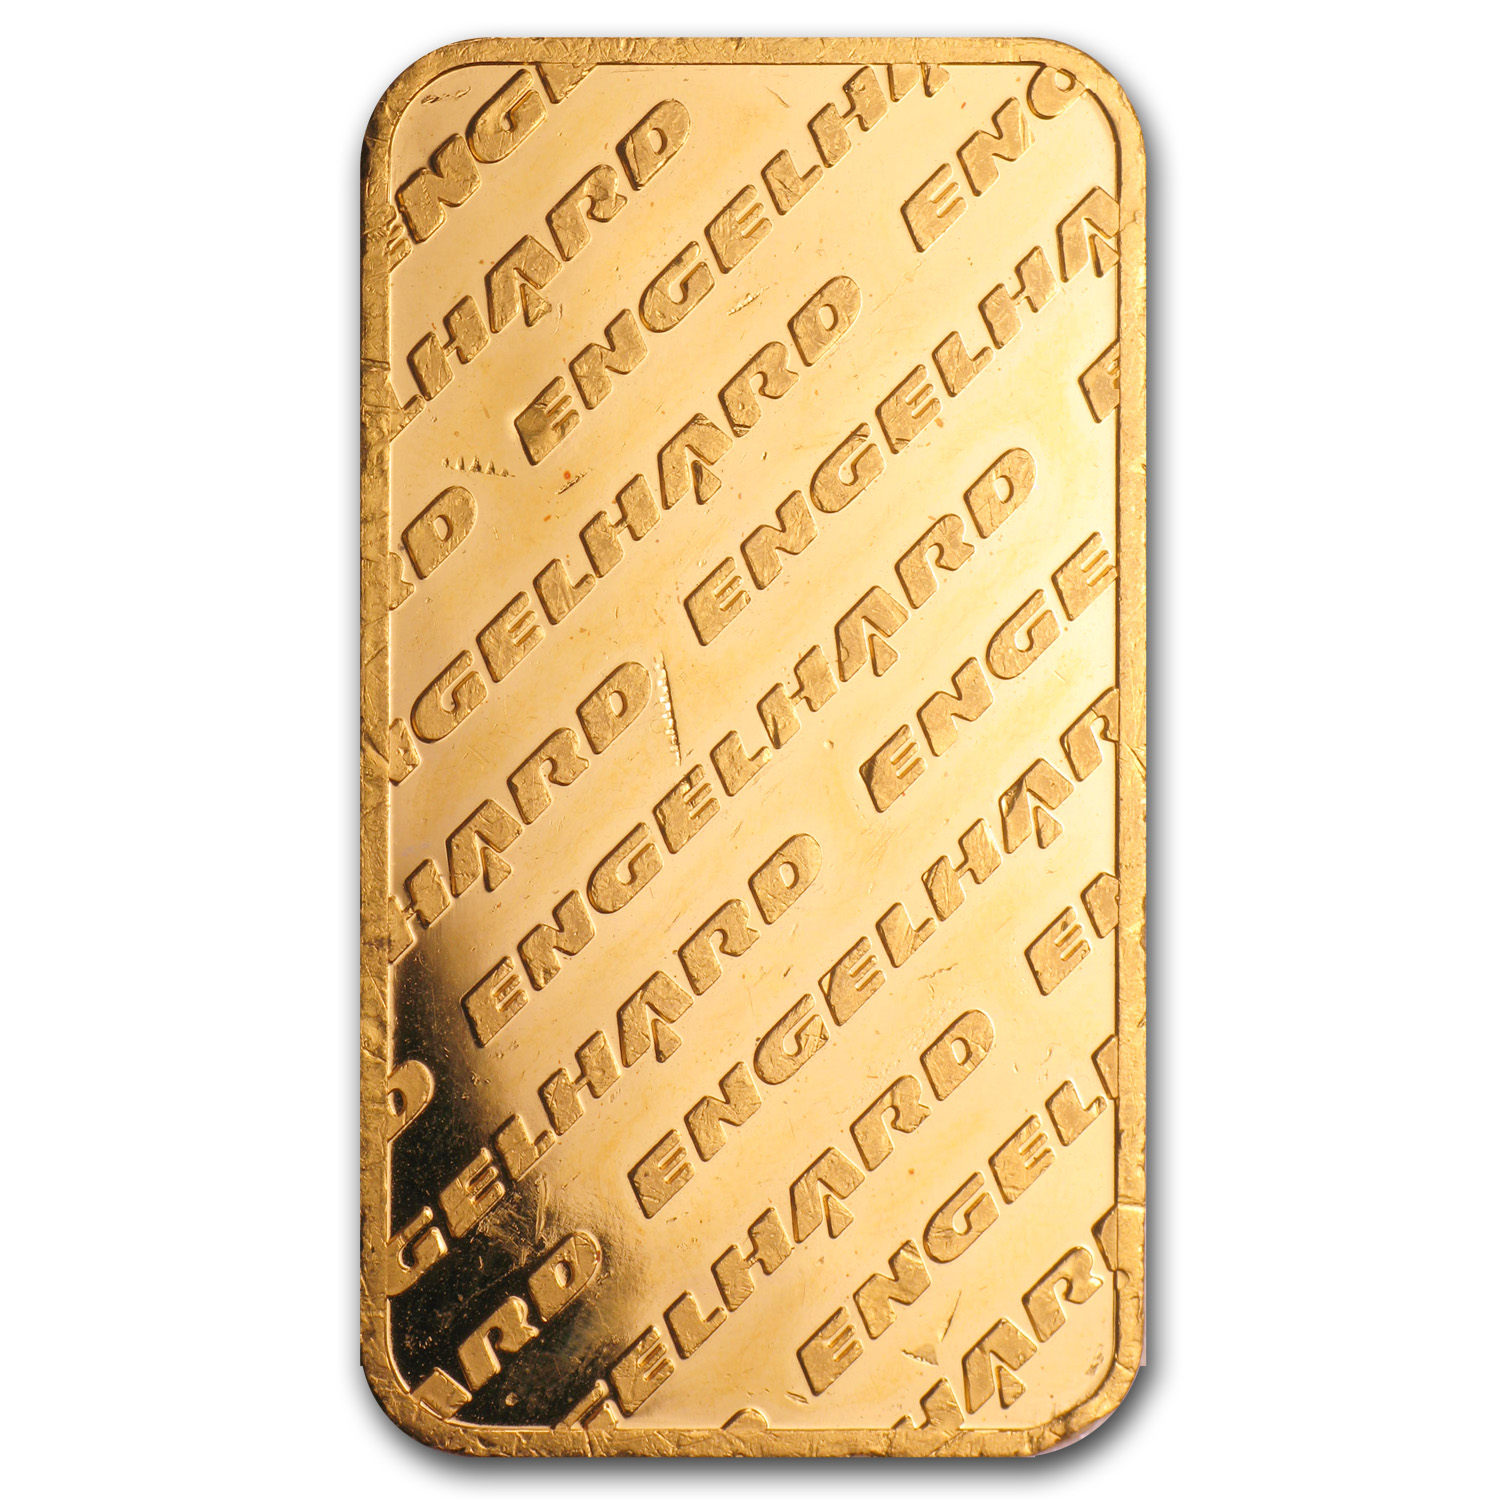 100 gram Gold Bar - Engelhard ('Eagle' Logo)